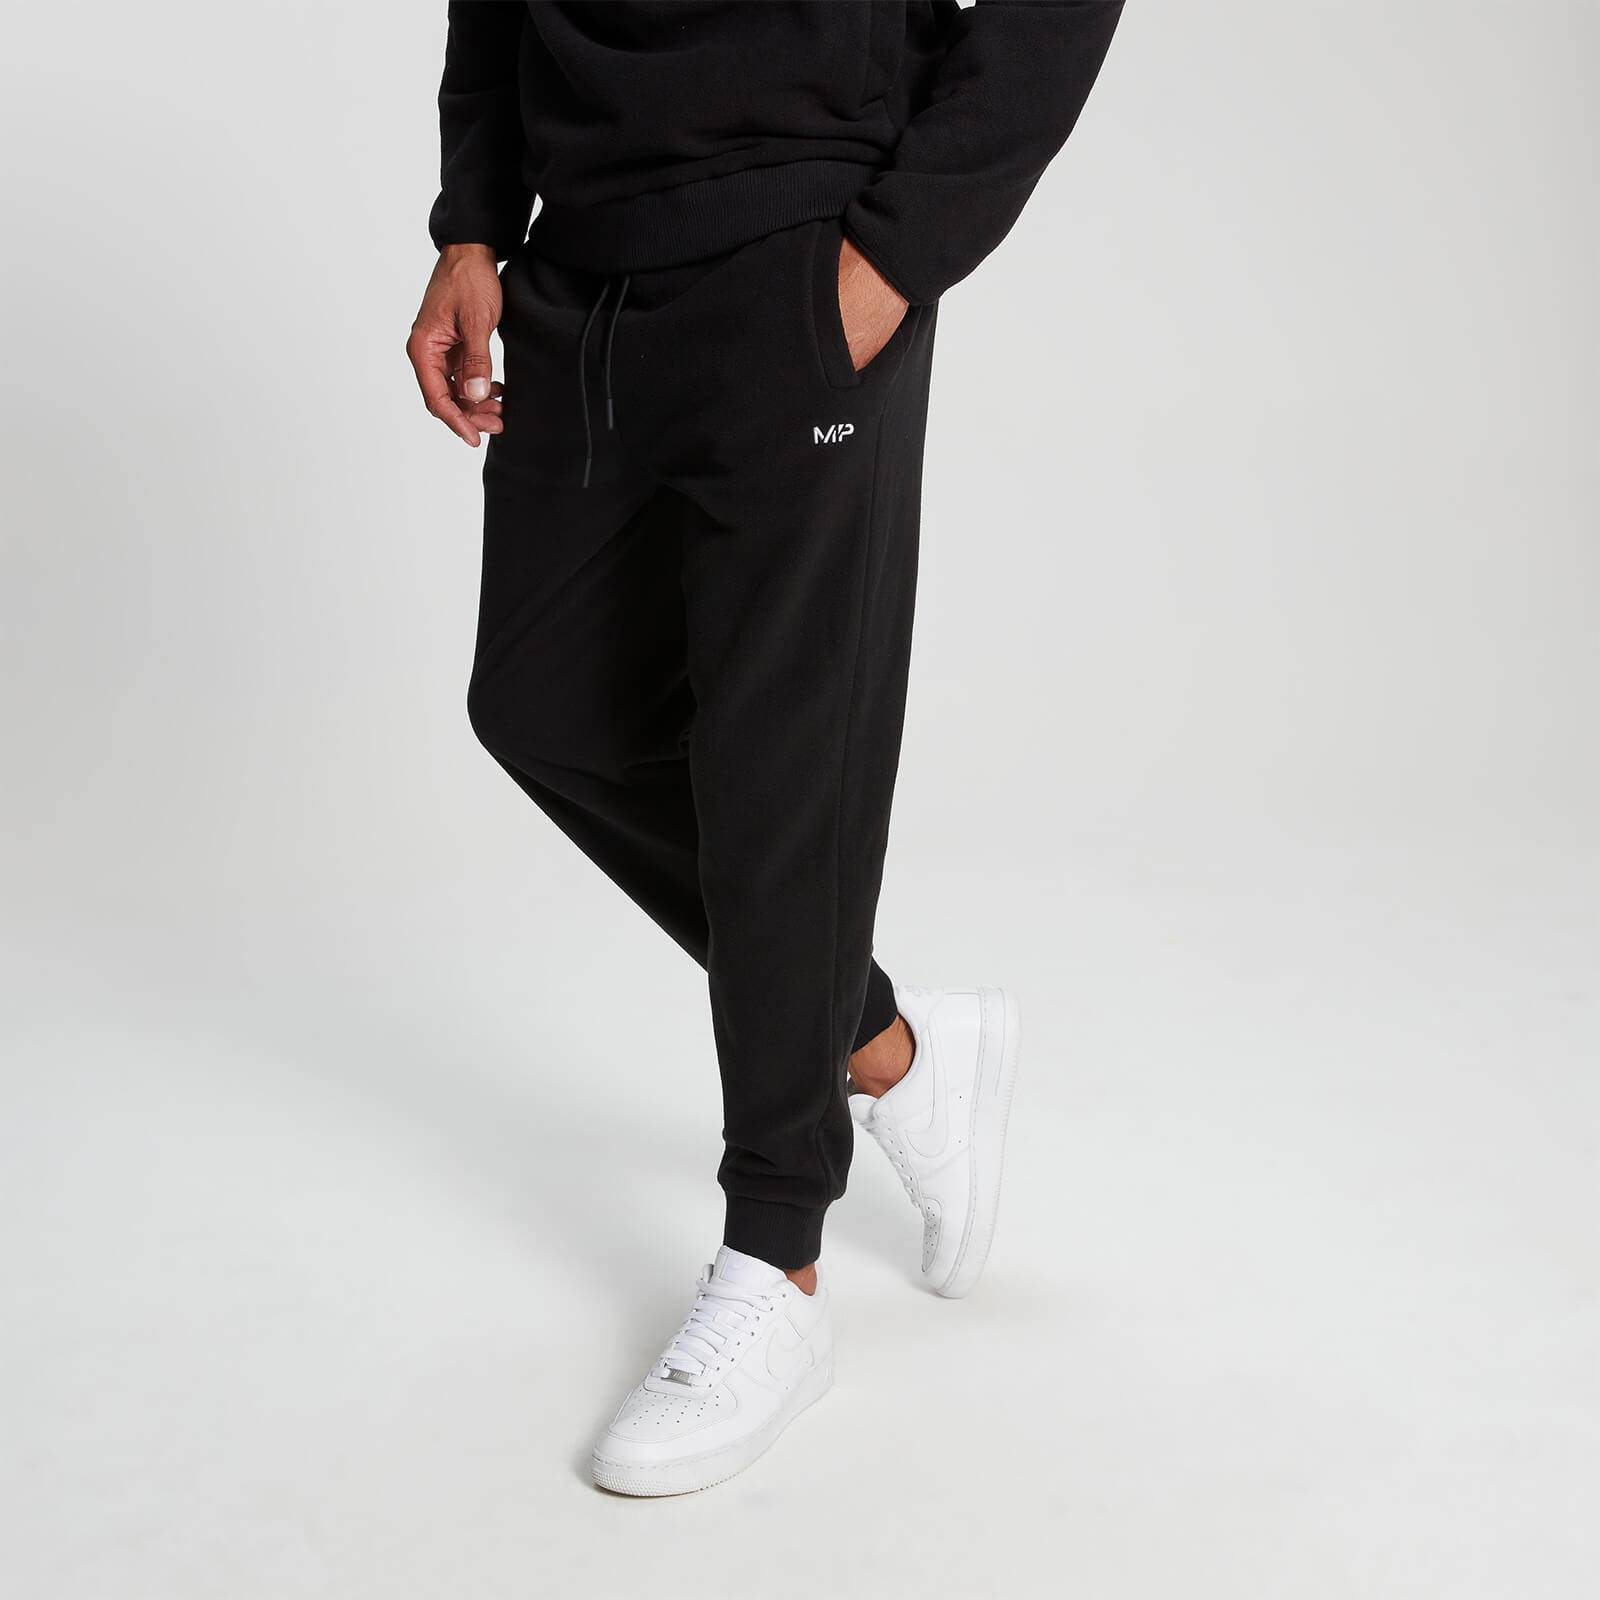 Mp Pantaloni da jogging  Essentials da uomo - Nero - XS